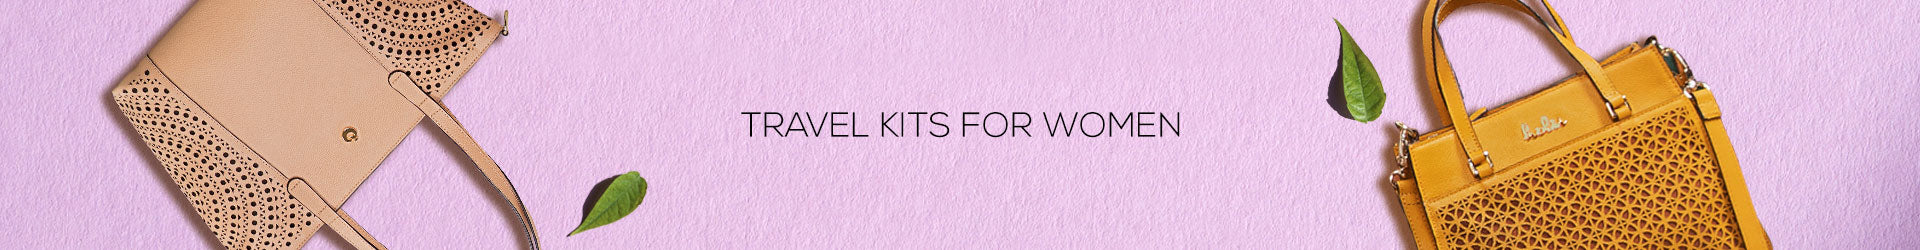 travel kits for women